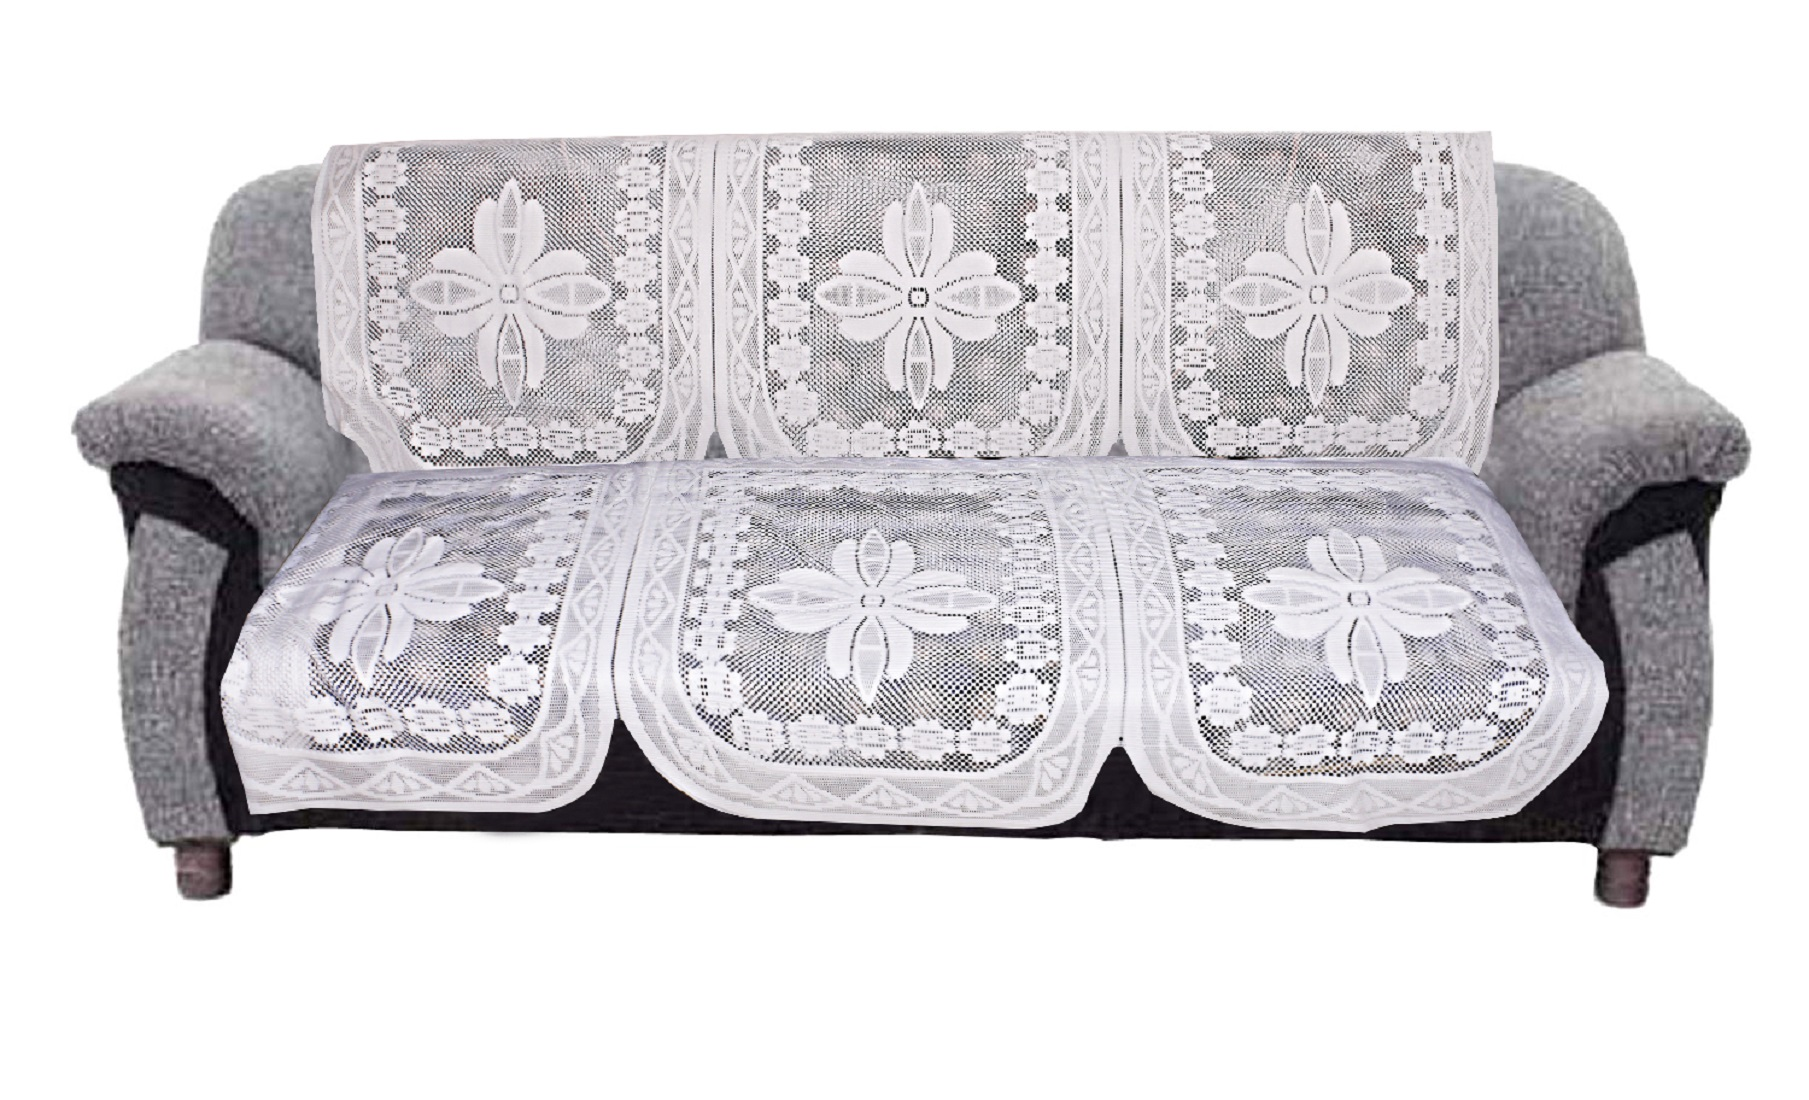 Kuber Industries Floral Design Cotton 6 Pieces 5 Seater Sofa Cover Set (White)-CTKTC32976